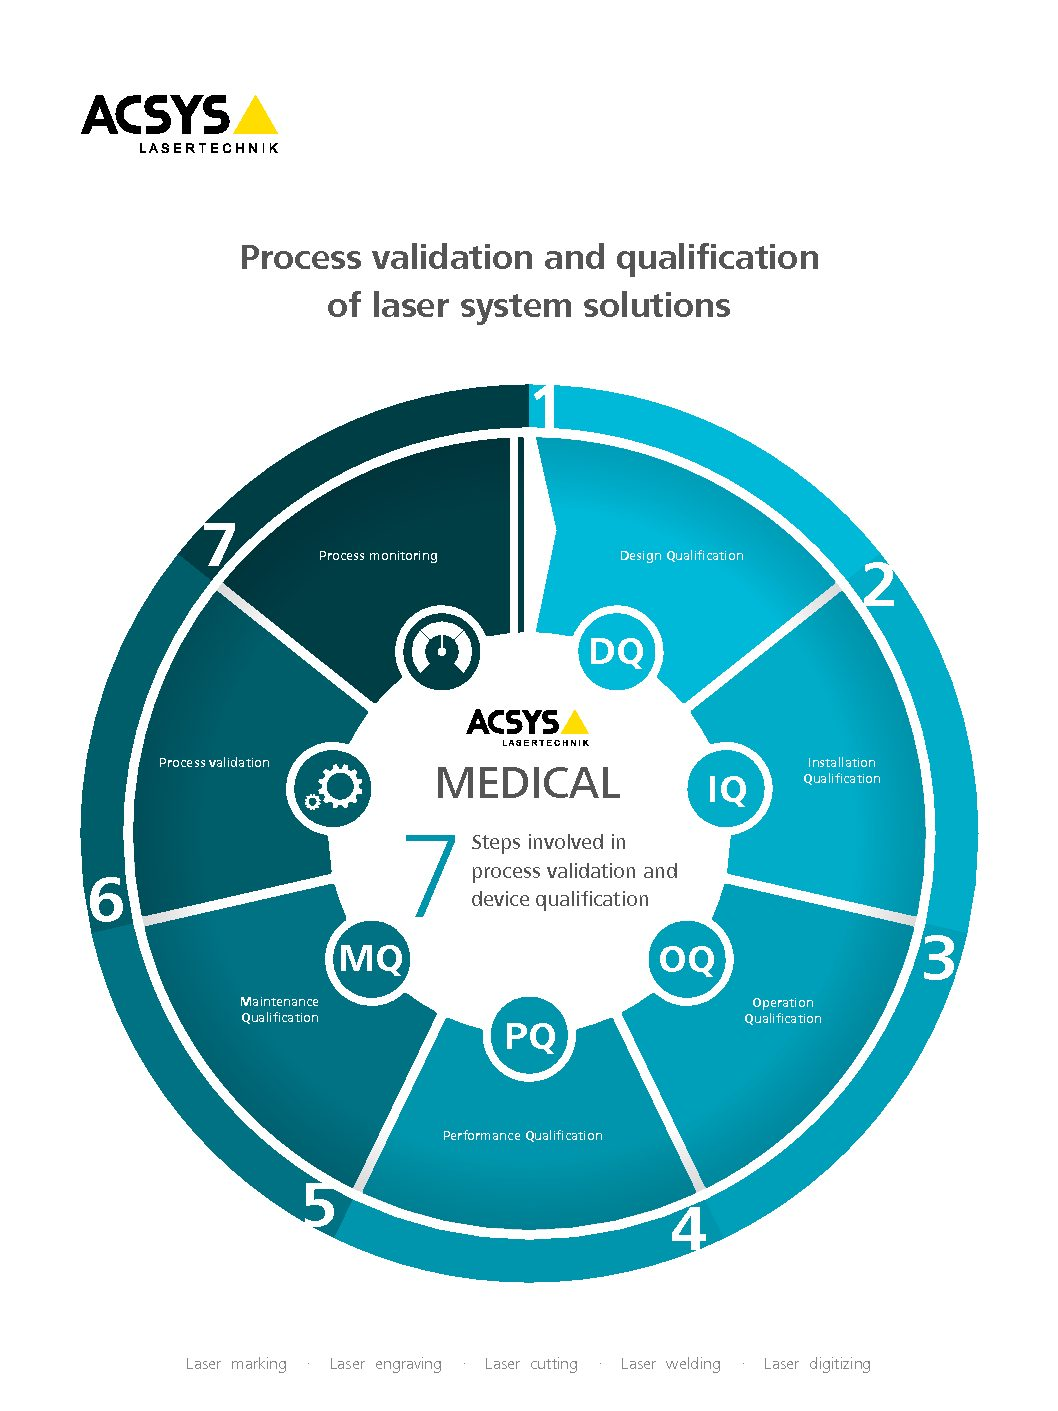 The ACSYS MEDICAL Infobrochure on process validation and device qualification